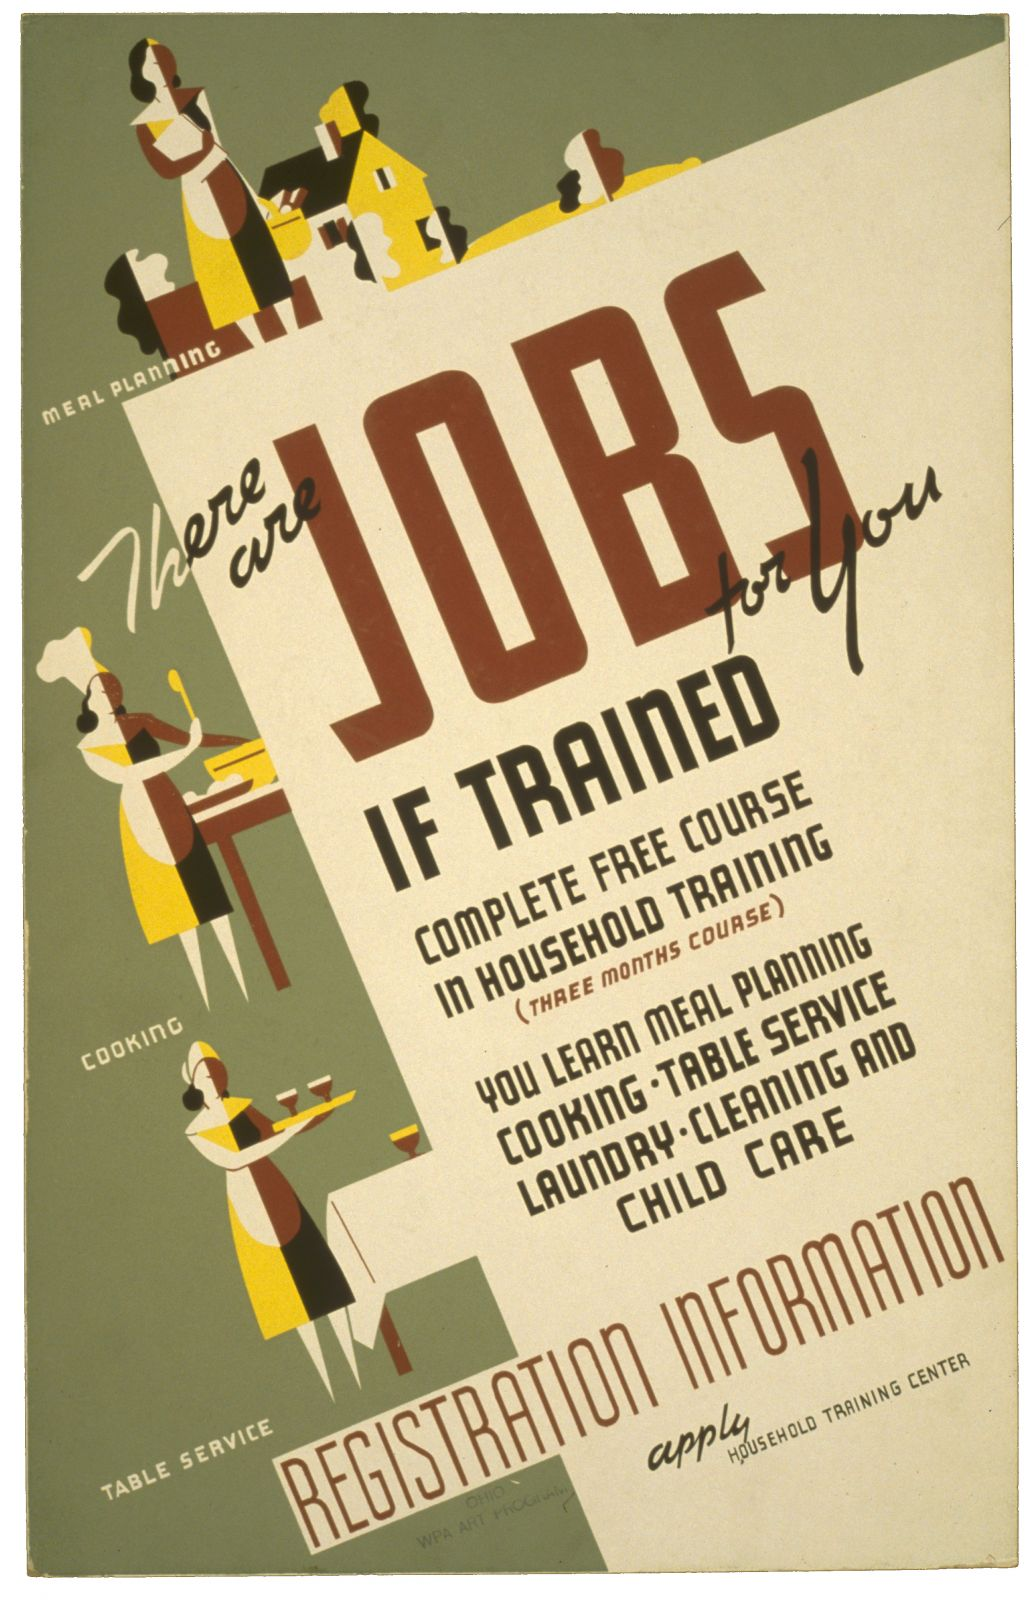 There are jobs for you, if trained Complete free course in household training